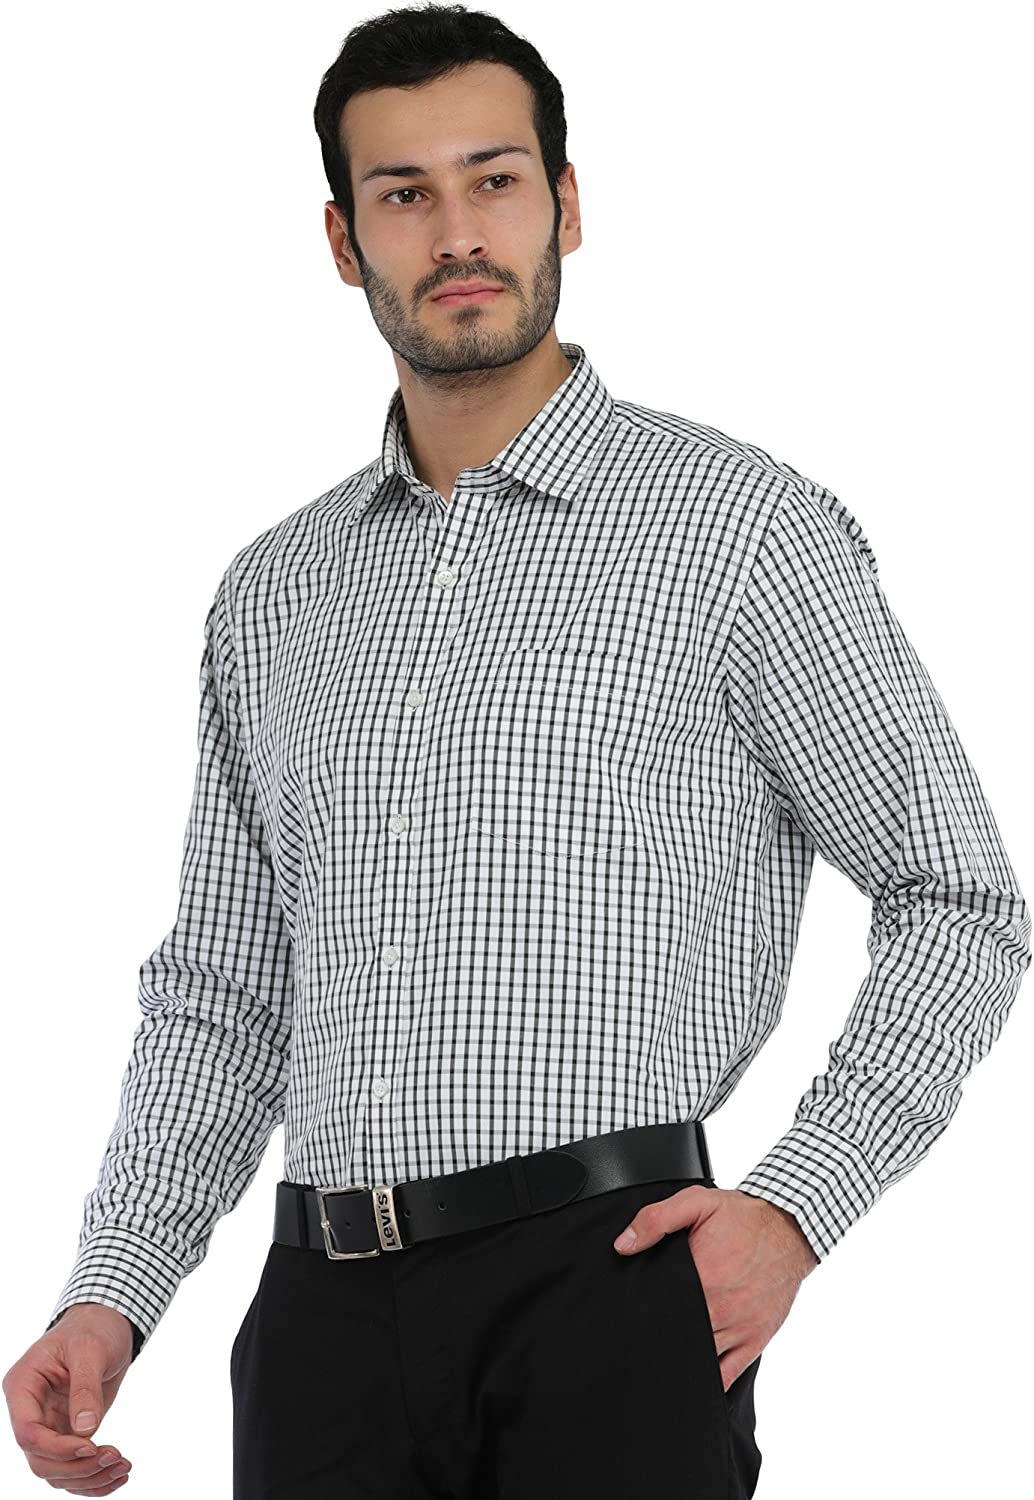 Exotic India - Camisa de Cuadros Informal, Color Blanco y Negro: Amazon.es: Ropa y accesorios